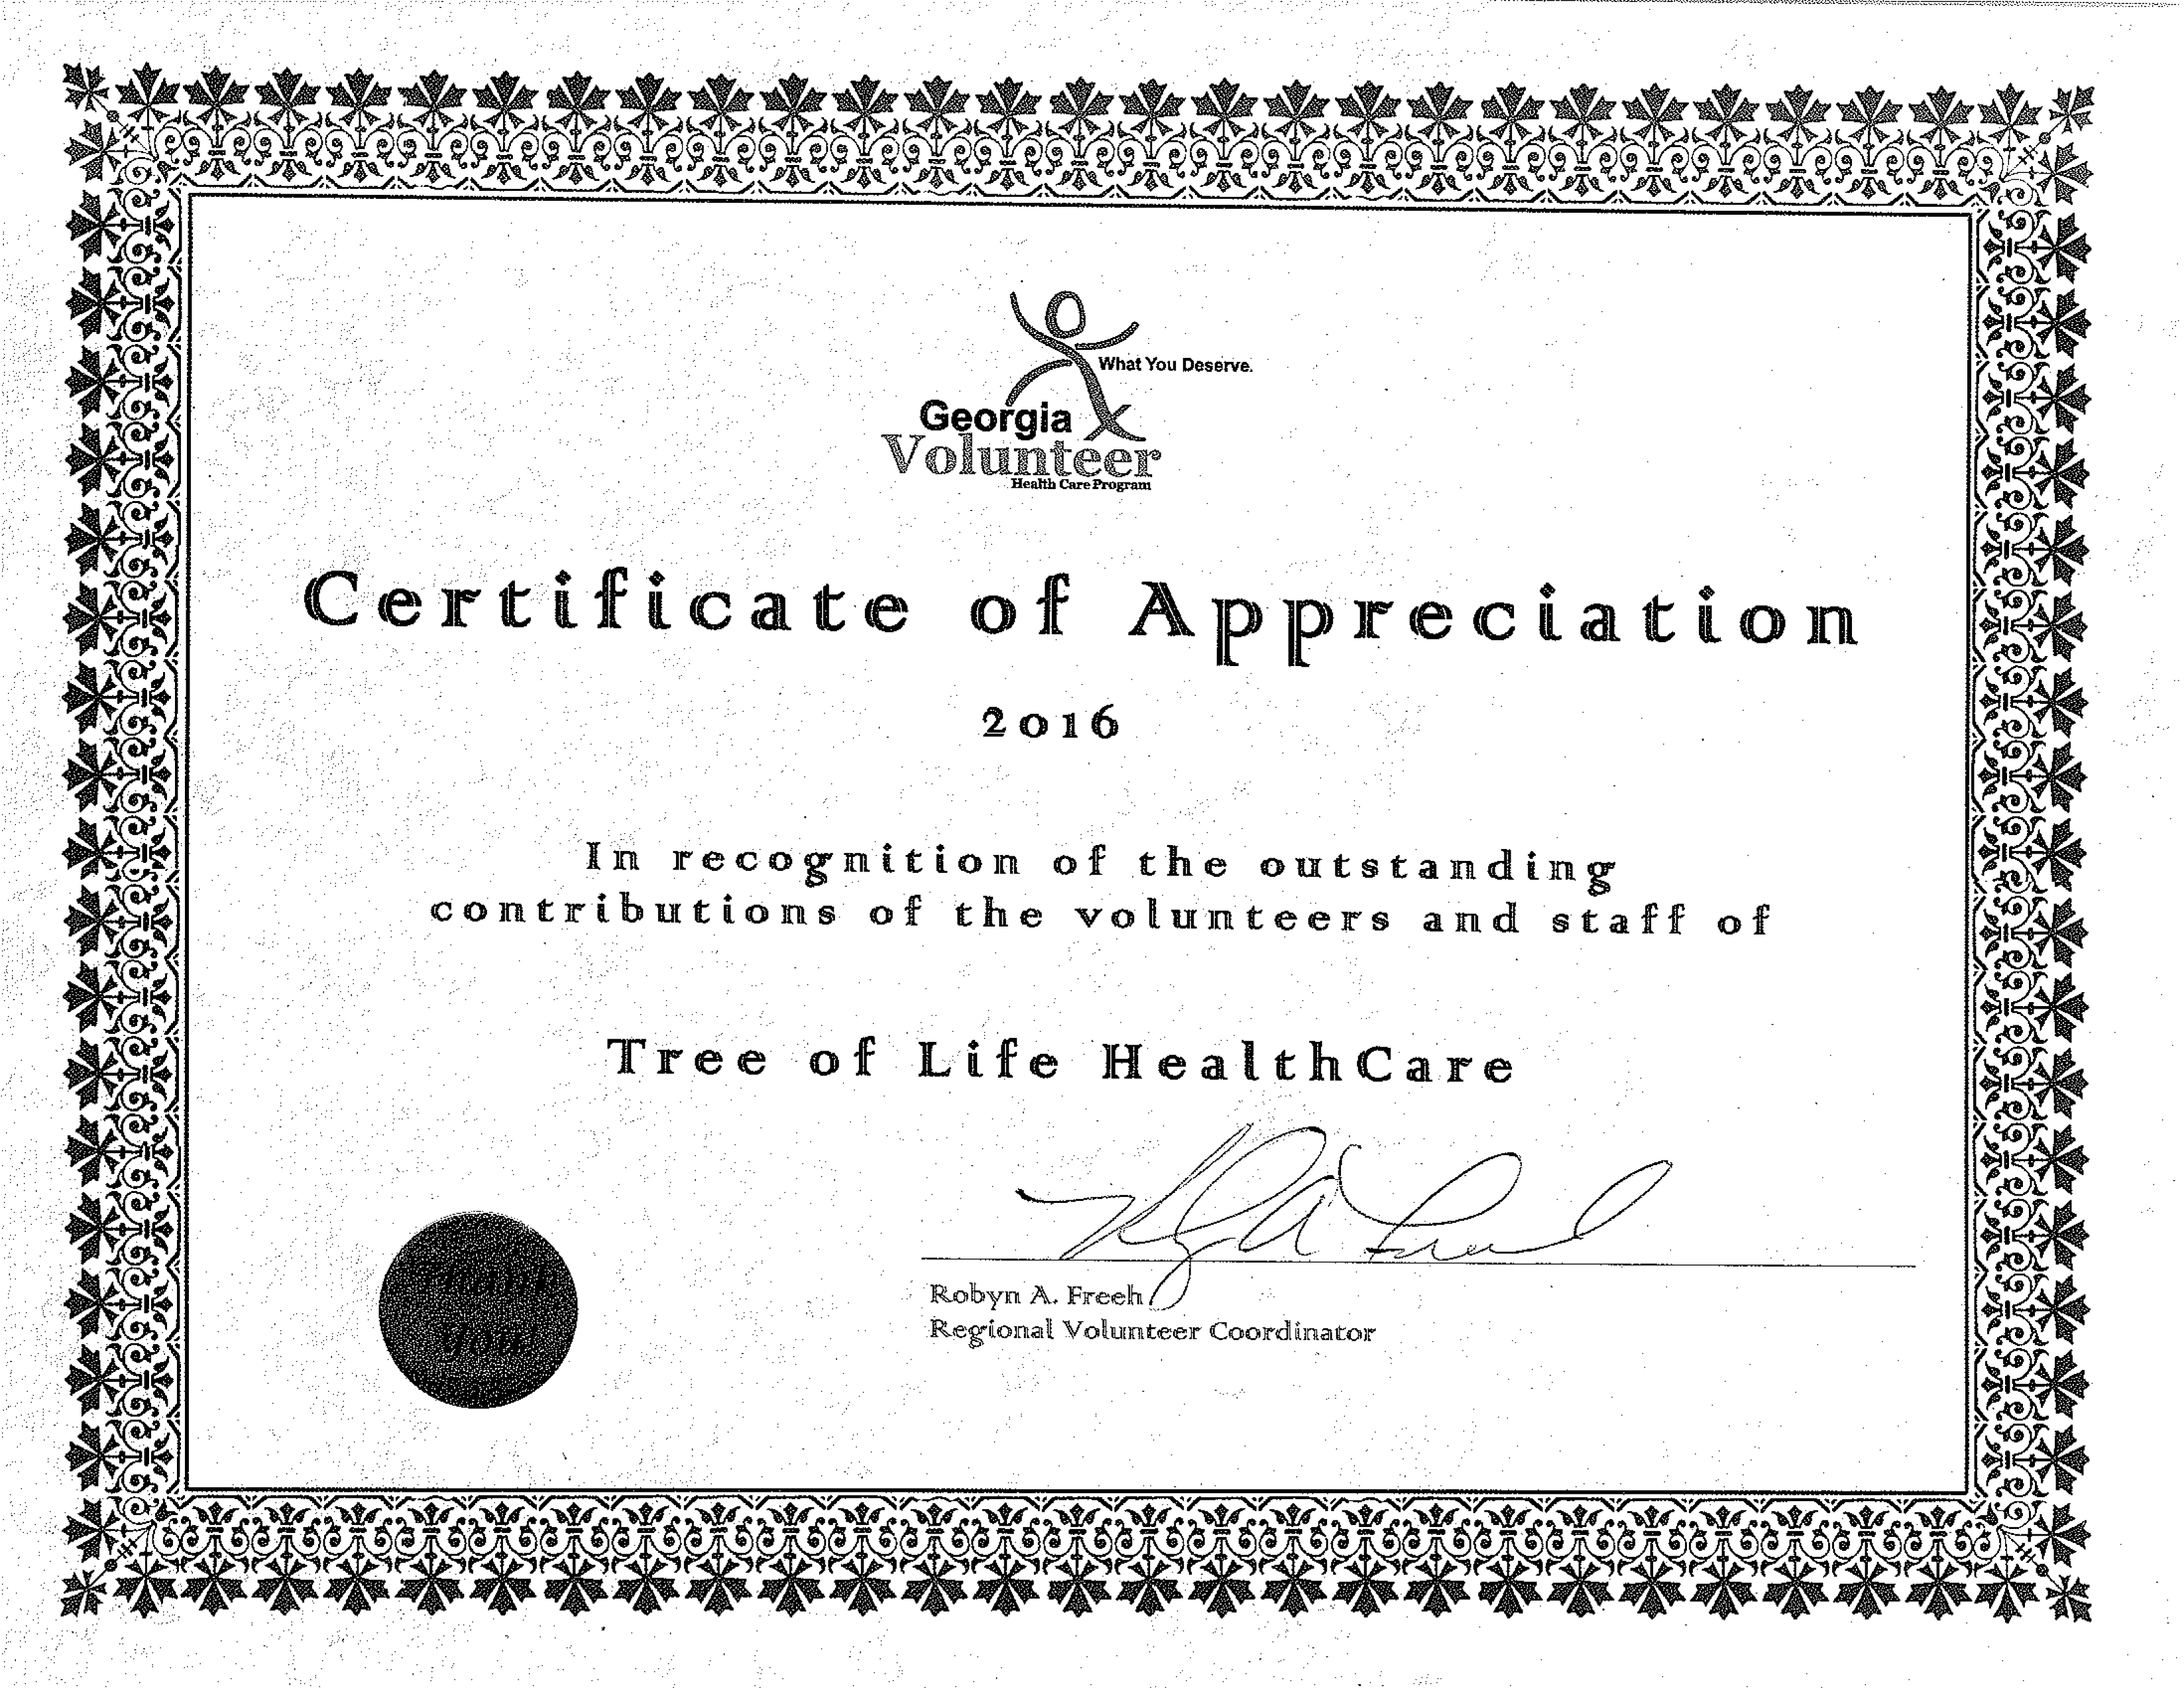 About - Tree of Life Healthcare